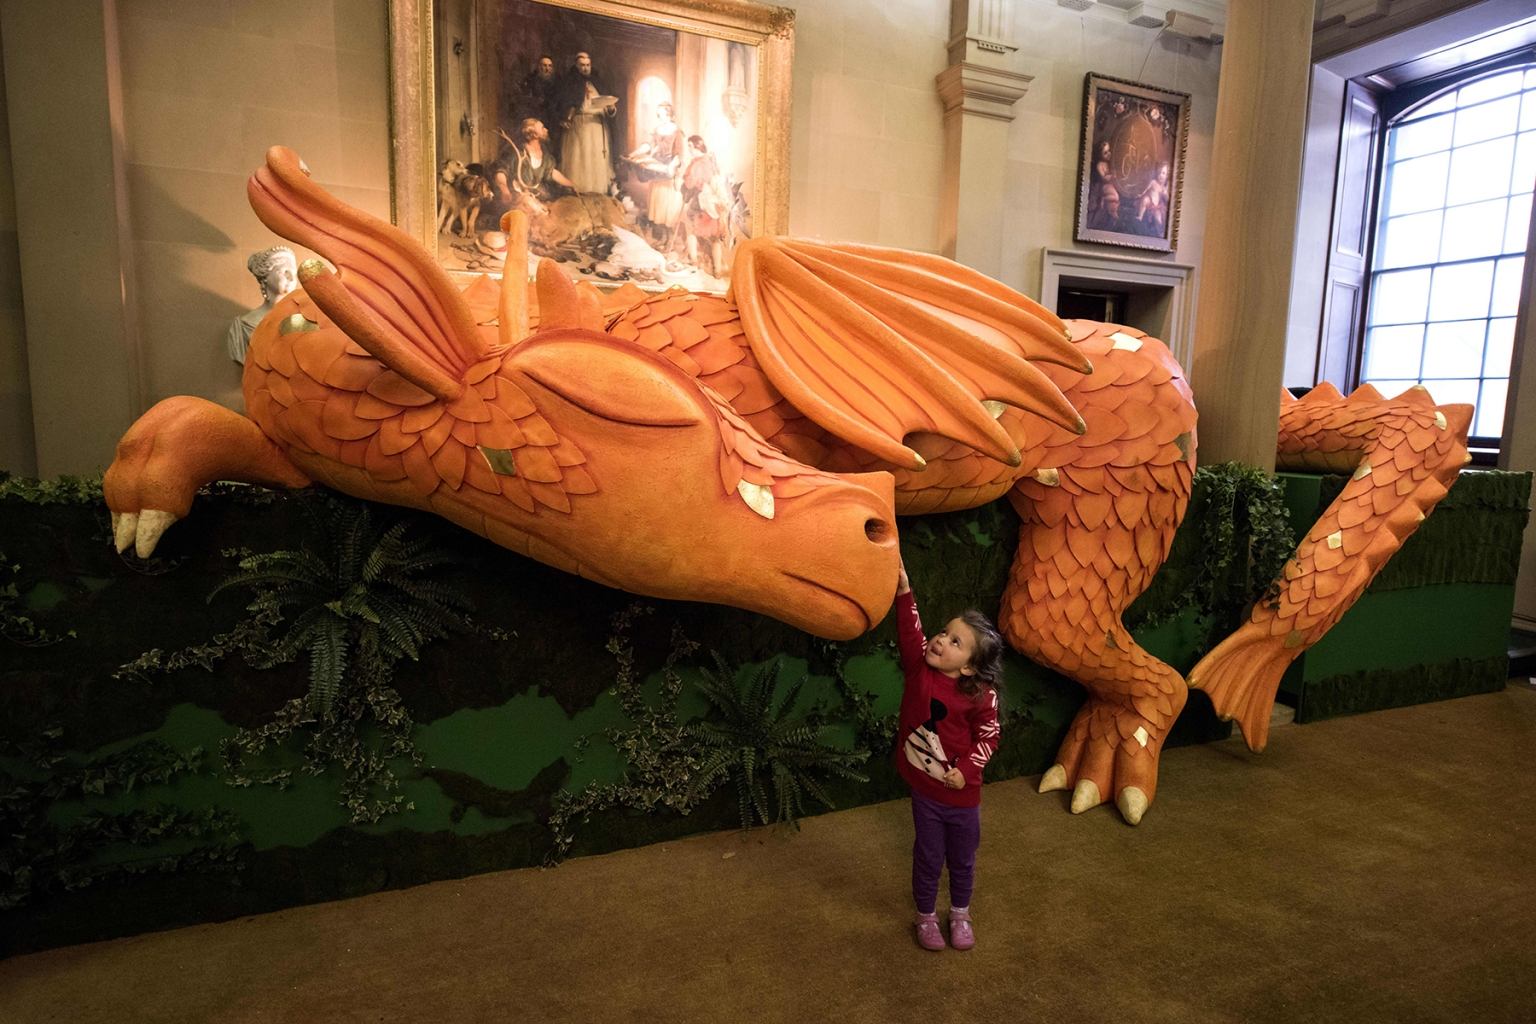 A 3-year-old girl plays with a model of a sleeping dragon in the hall of Chatsworth House which has been decorated for their Christmas season in various fairy tale scenes on the theme of 'Once Upon a Time', during a photocall at Chatsworth House near Bakewell, northern England on November 8, 2018. - Various rooms in Chatsworth, the residence of Britian's Duke and Duchess of Devonshire, which is open to the public, are decorated every year for the festive season. (Photo by OLI SCARFF / AFP)        (Photo credit should read OLI SCARFF/AFP/Getty Images)